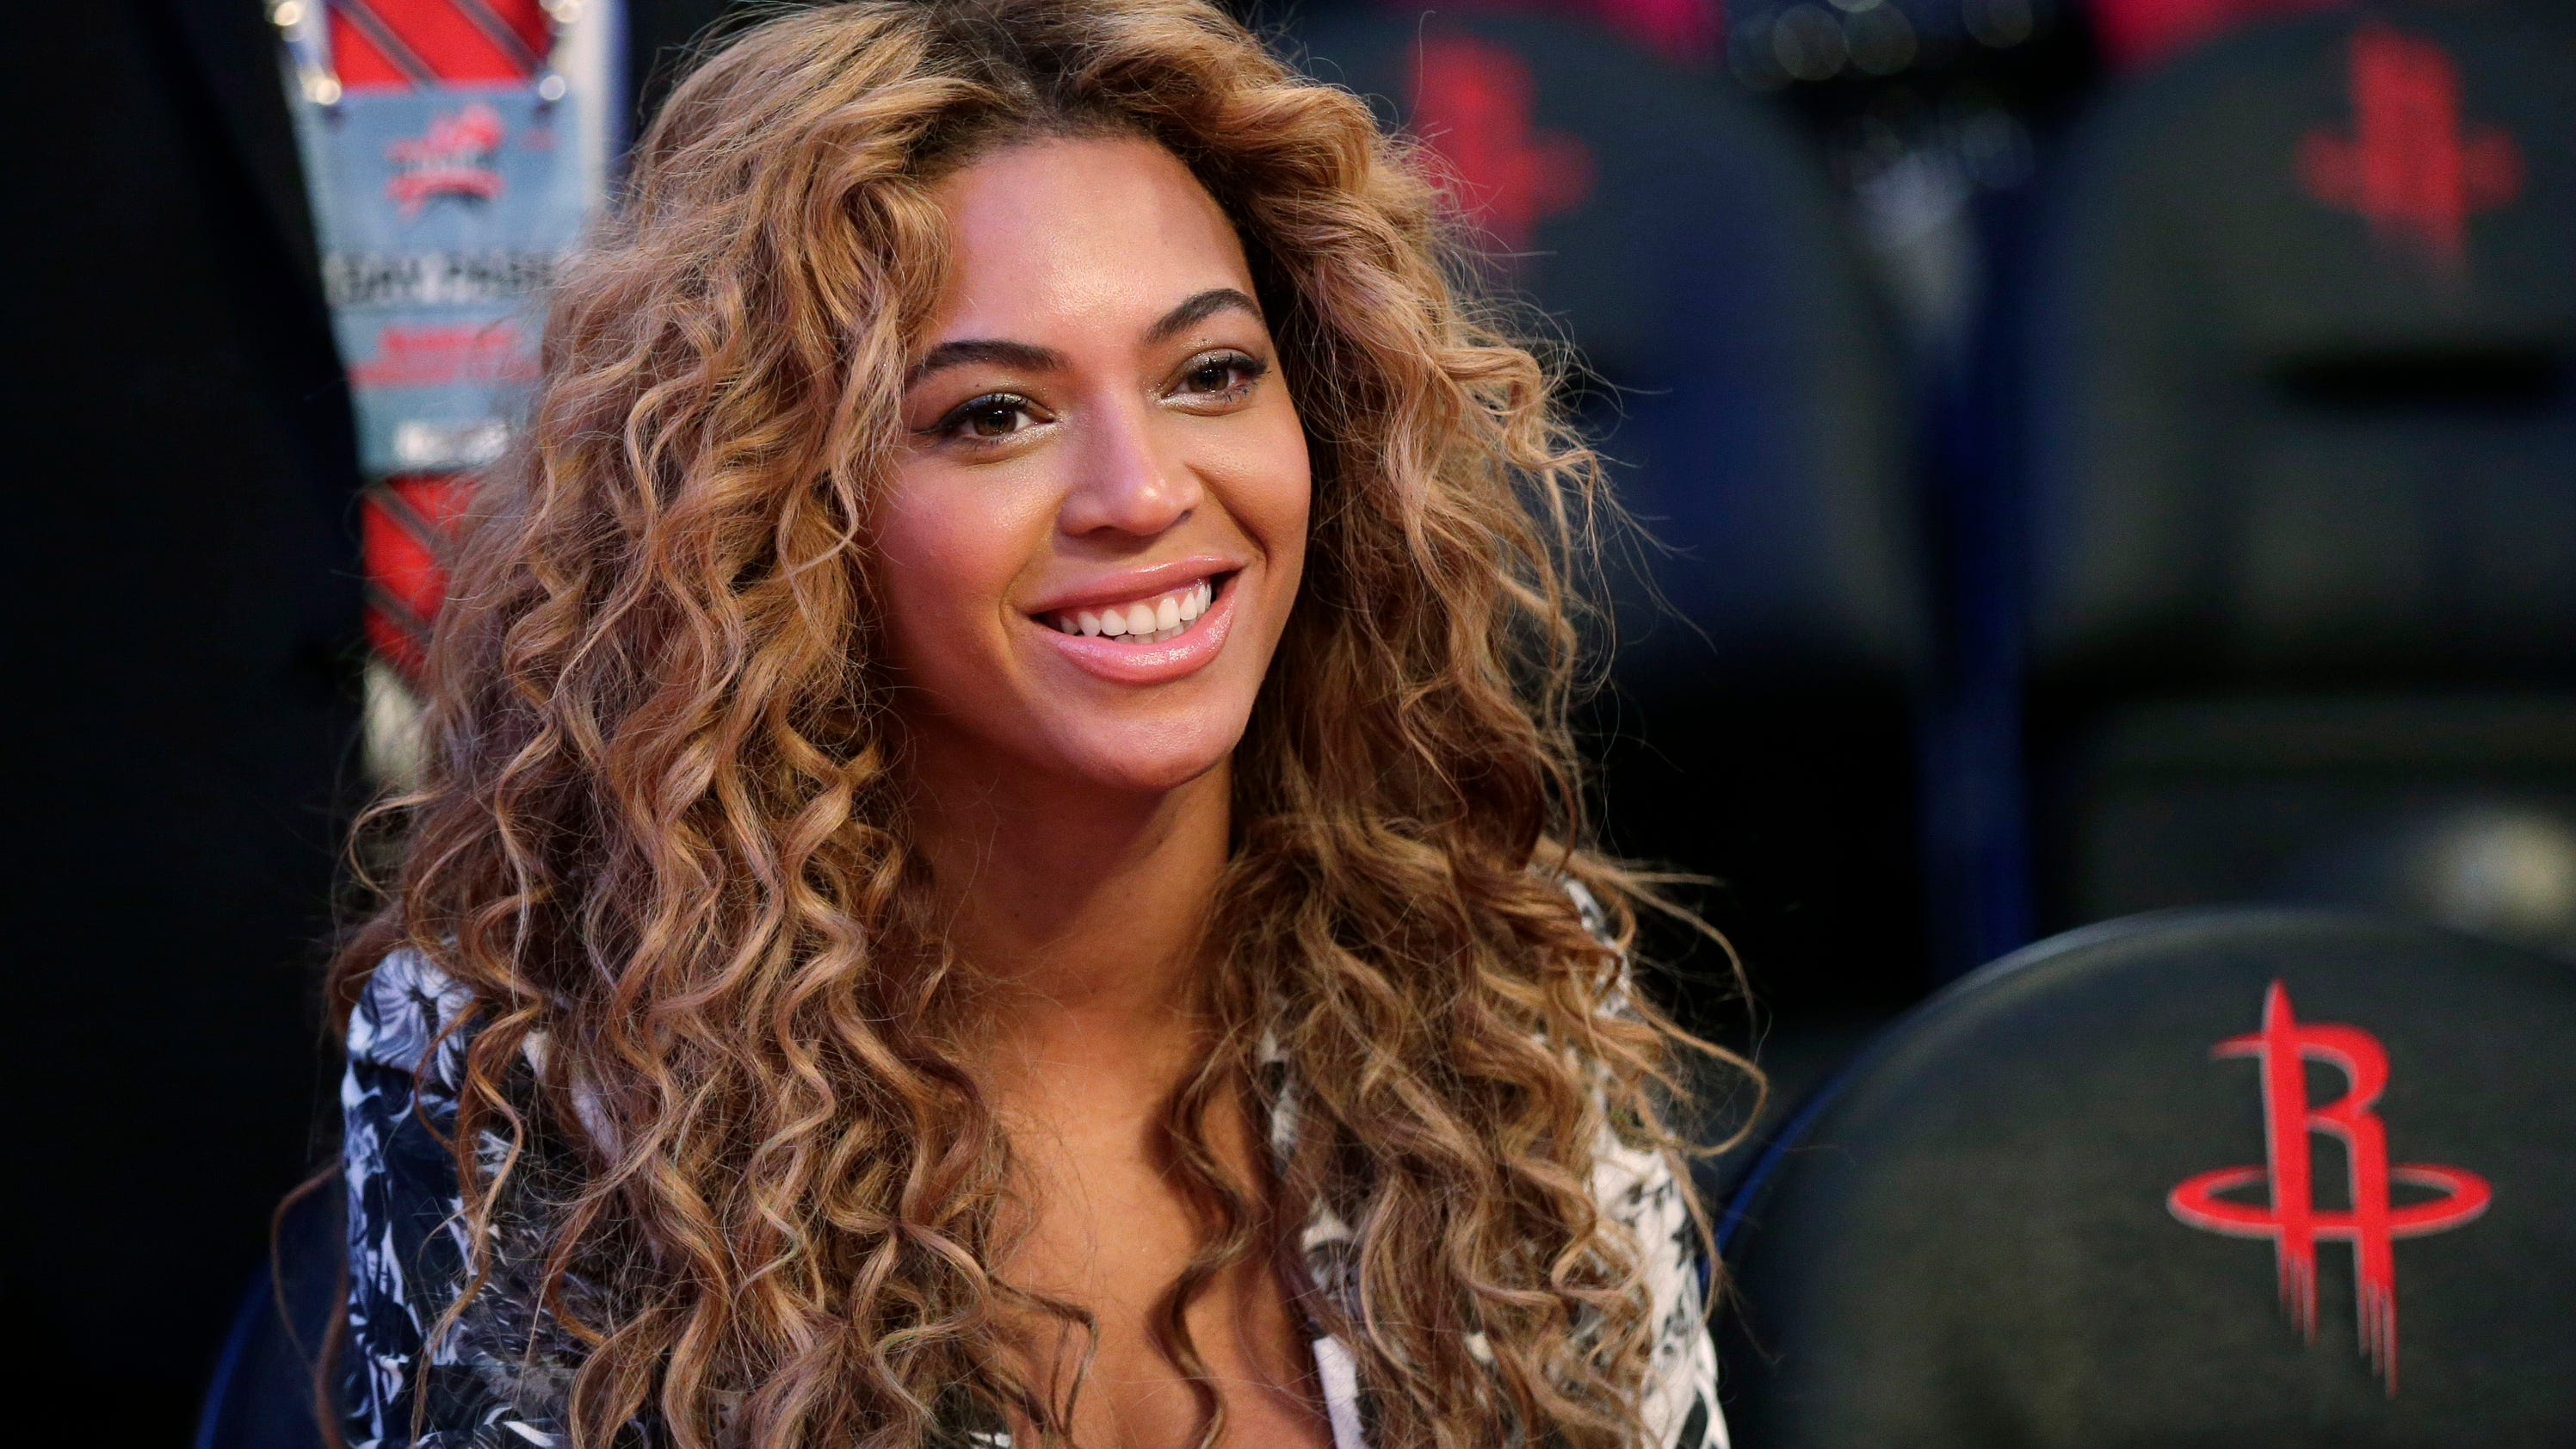 Ap_people-beyonce_73099302